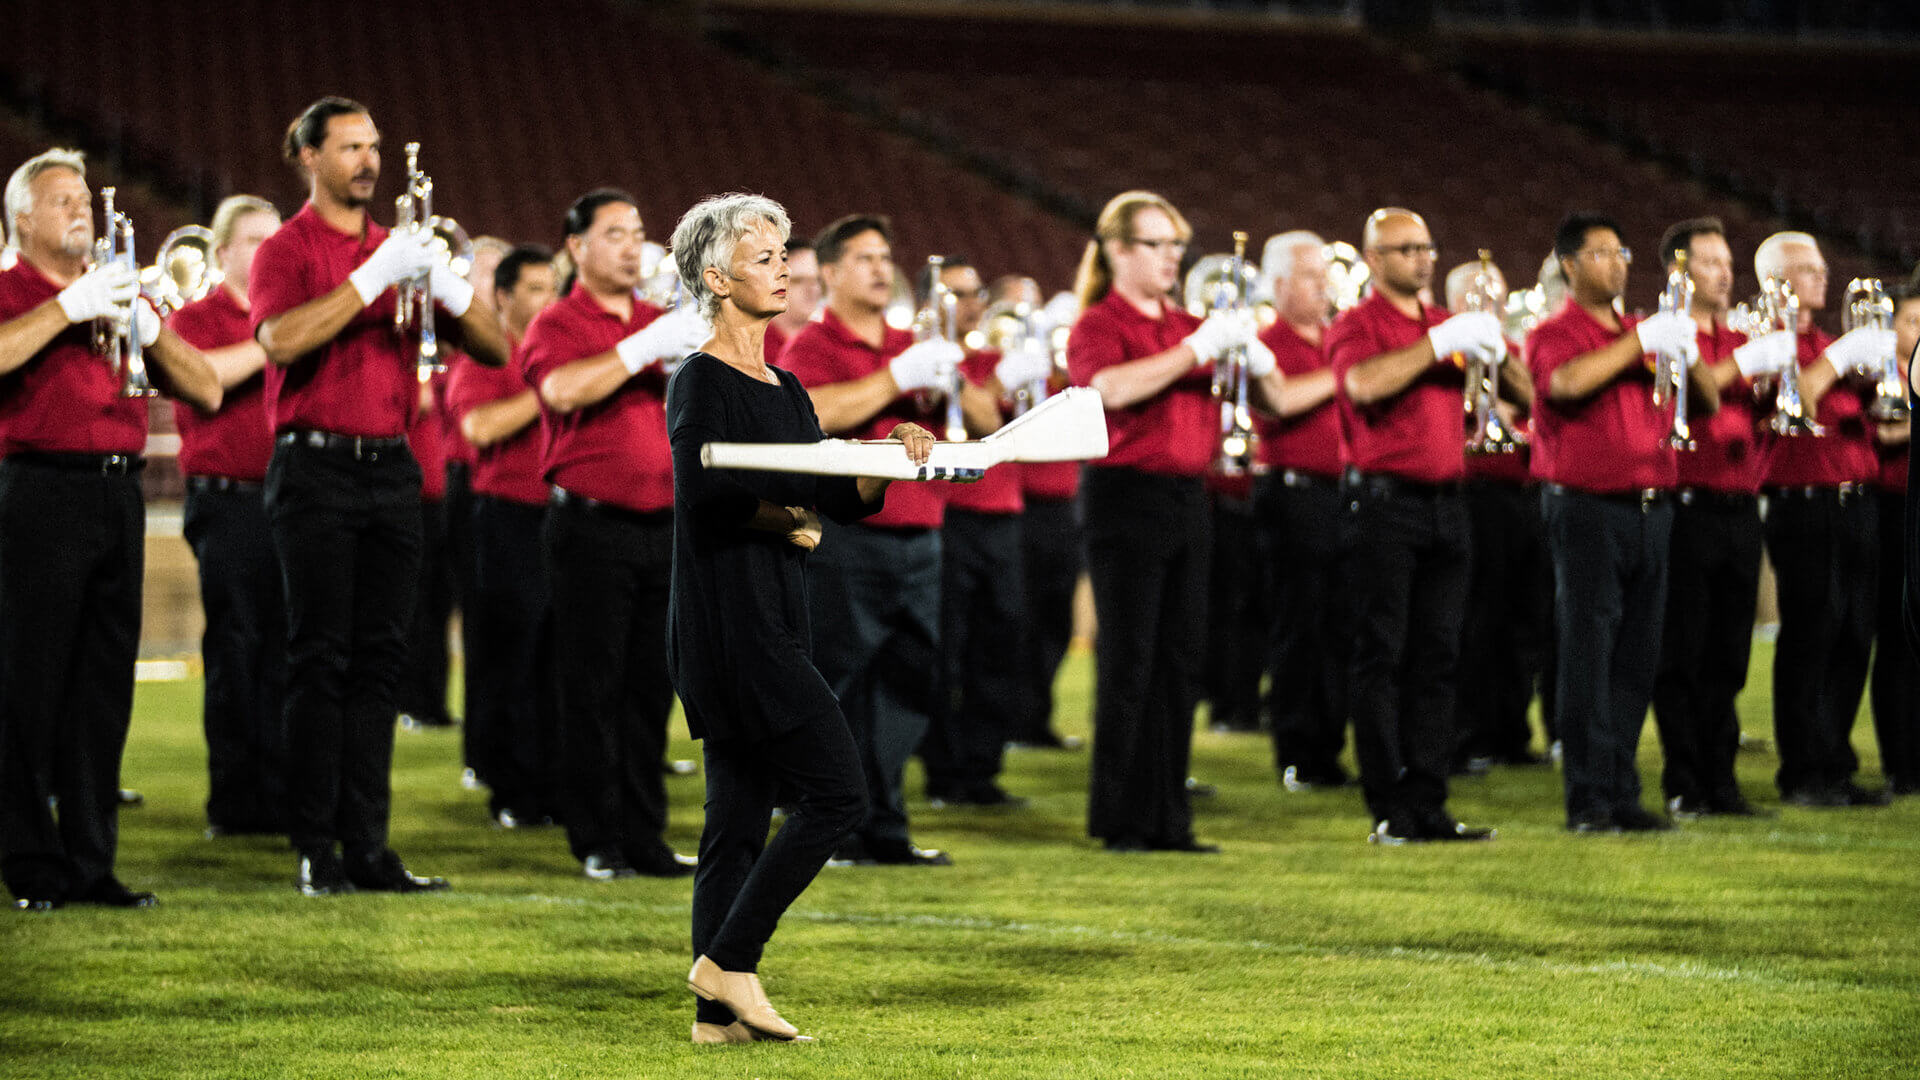 SCV Alumni Corps carries on tradition